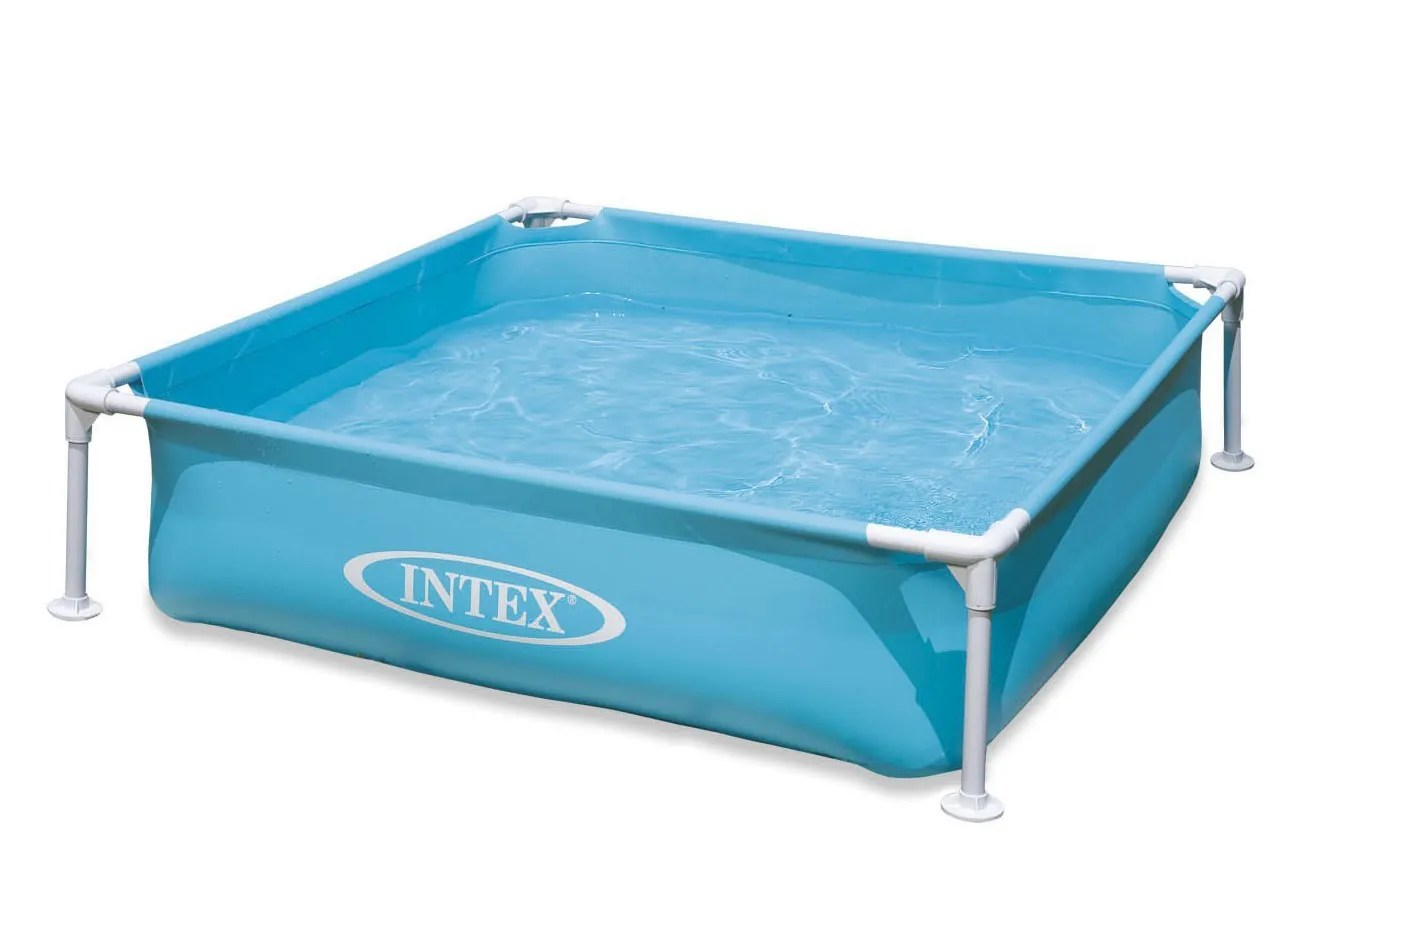 Jacuzzi Pool Amazon What Are Stock Tank Pools And How Do I Make One